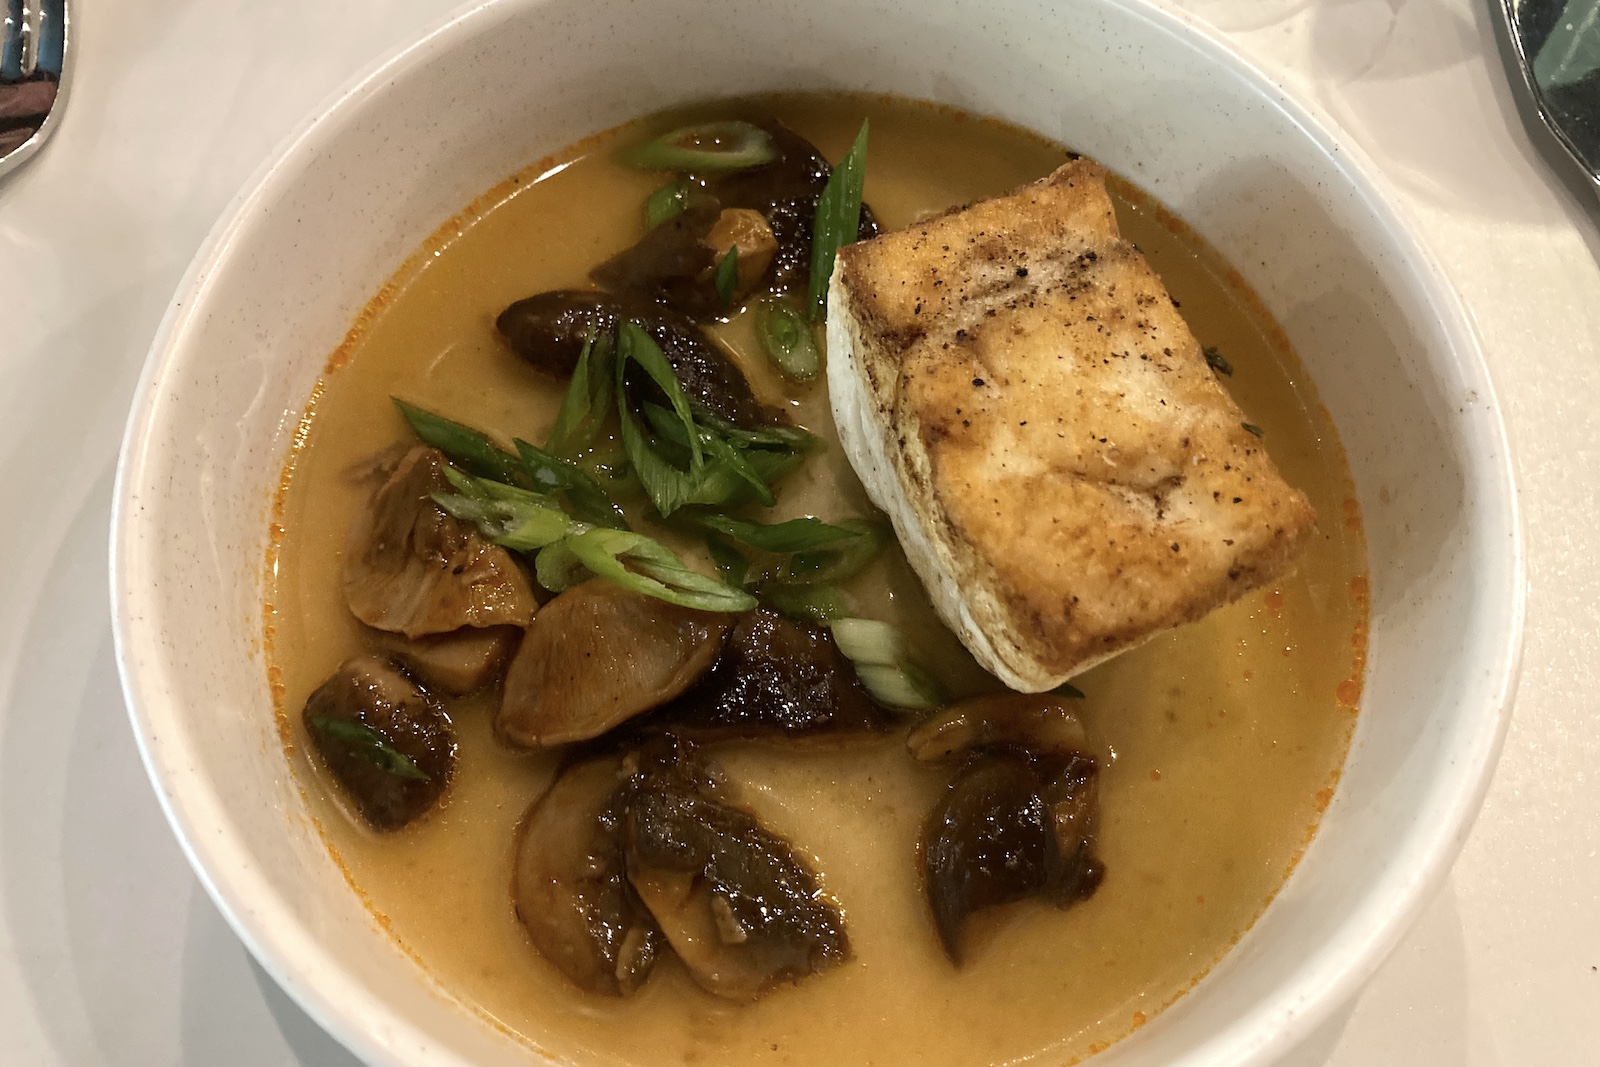 Halibut with miso dashi and dark spore mushrooms, a most American dish from CAMP in Greenville